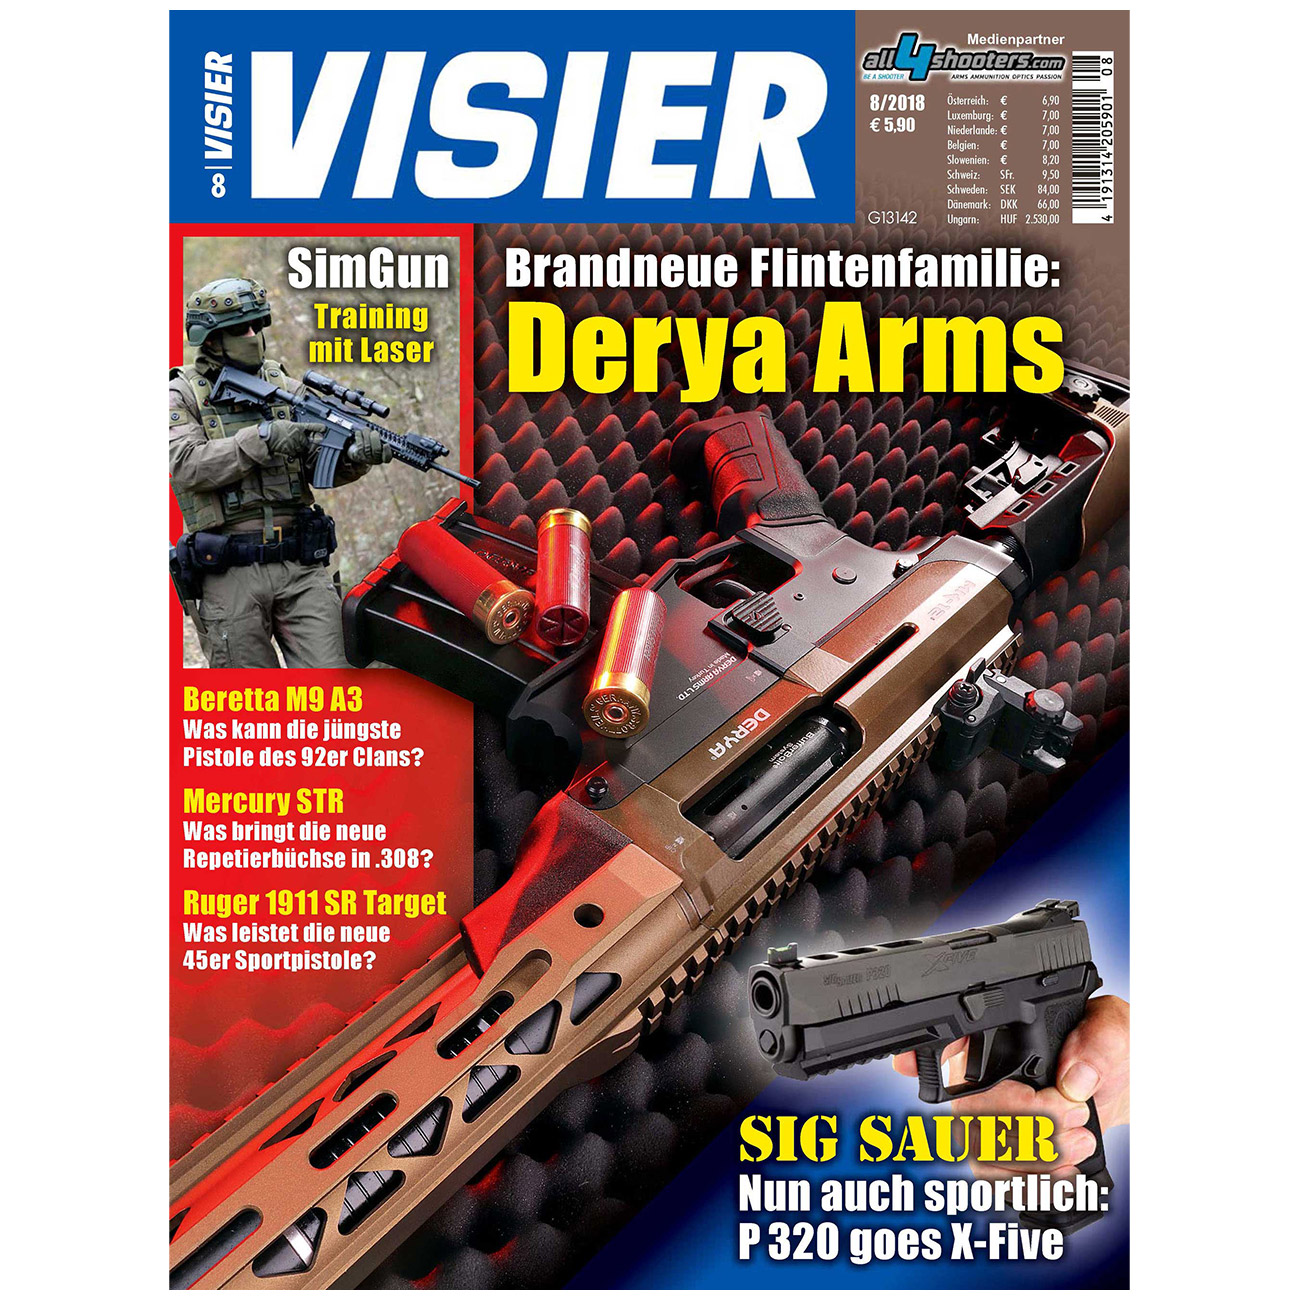 Visier - Das internationale Waffenmagazin 08/2018 0